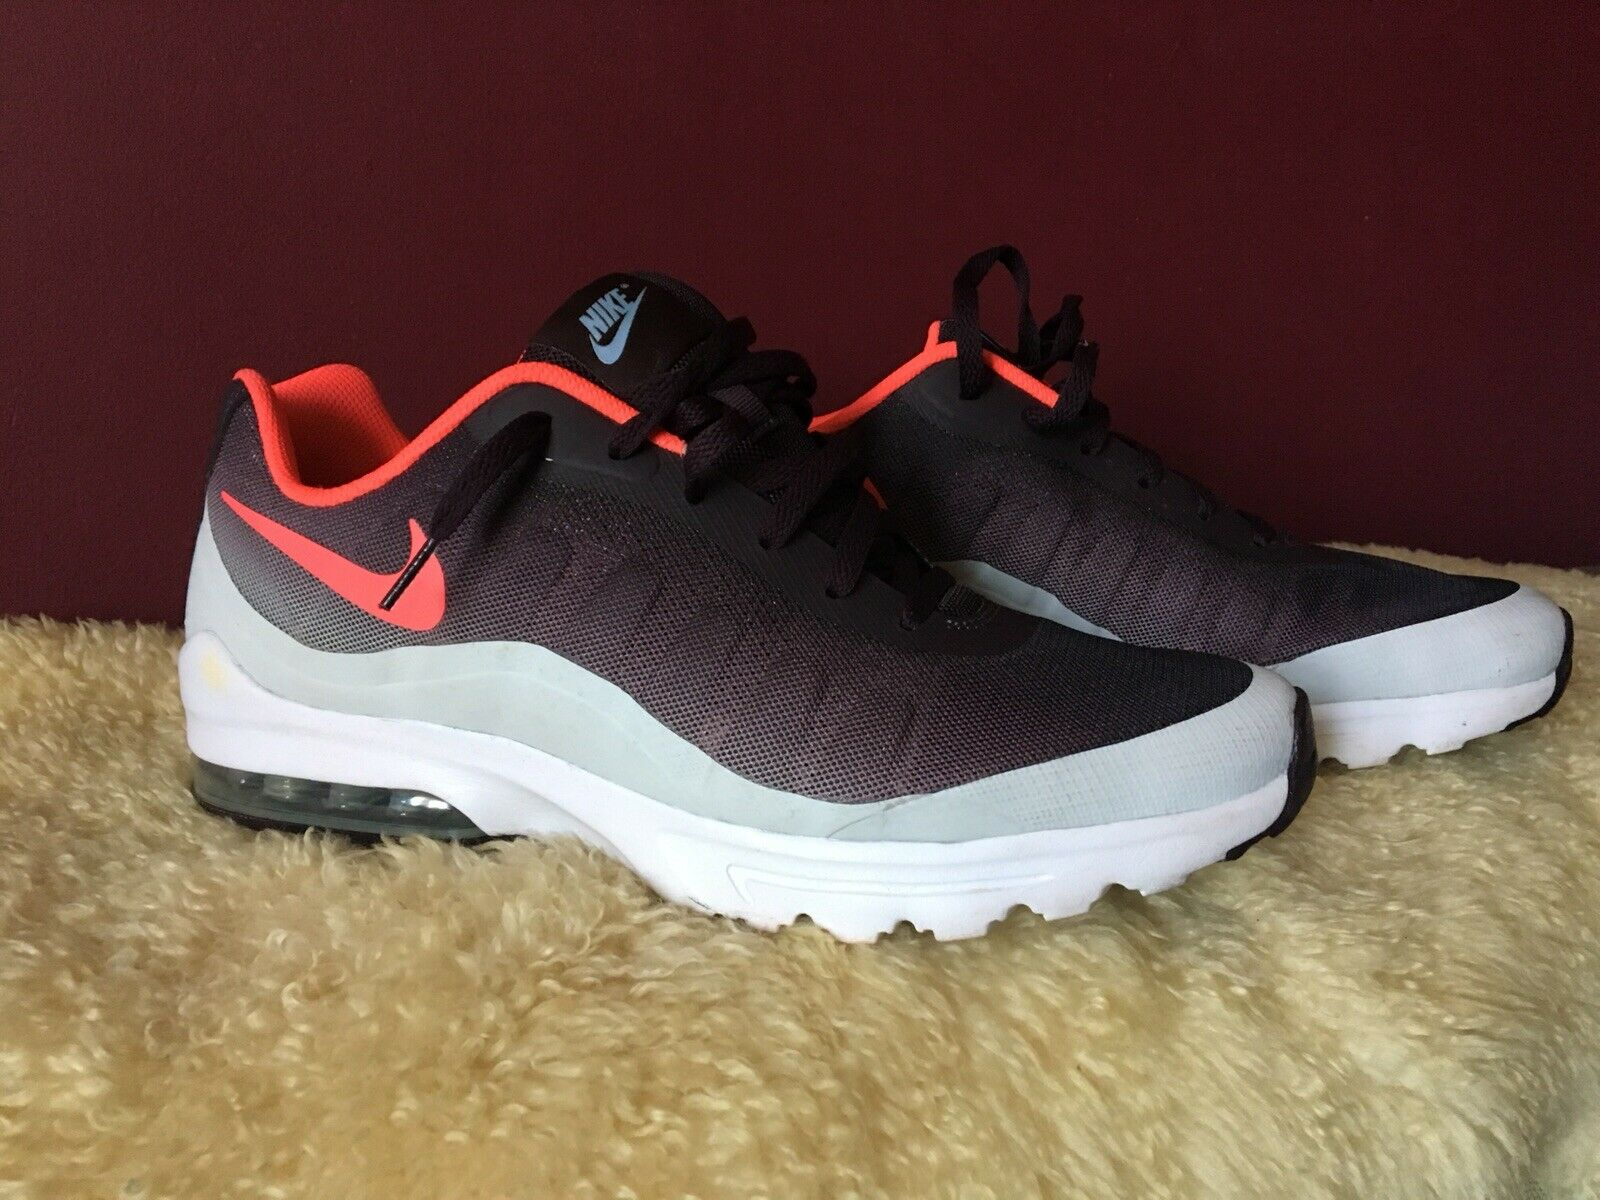 NIKE AIR Max 2017 Men's Running shoes (49688-601) Size US 13